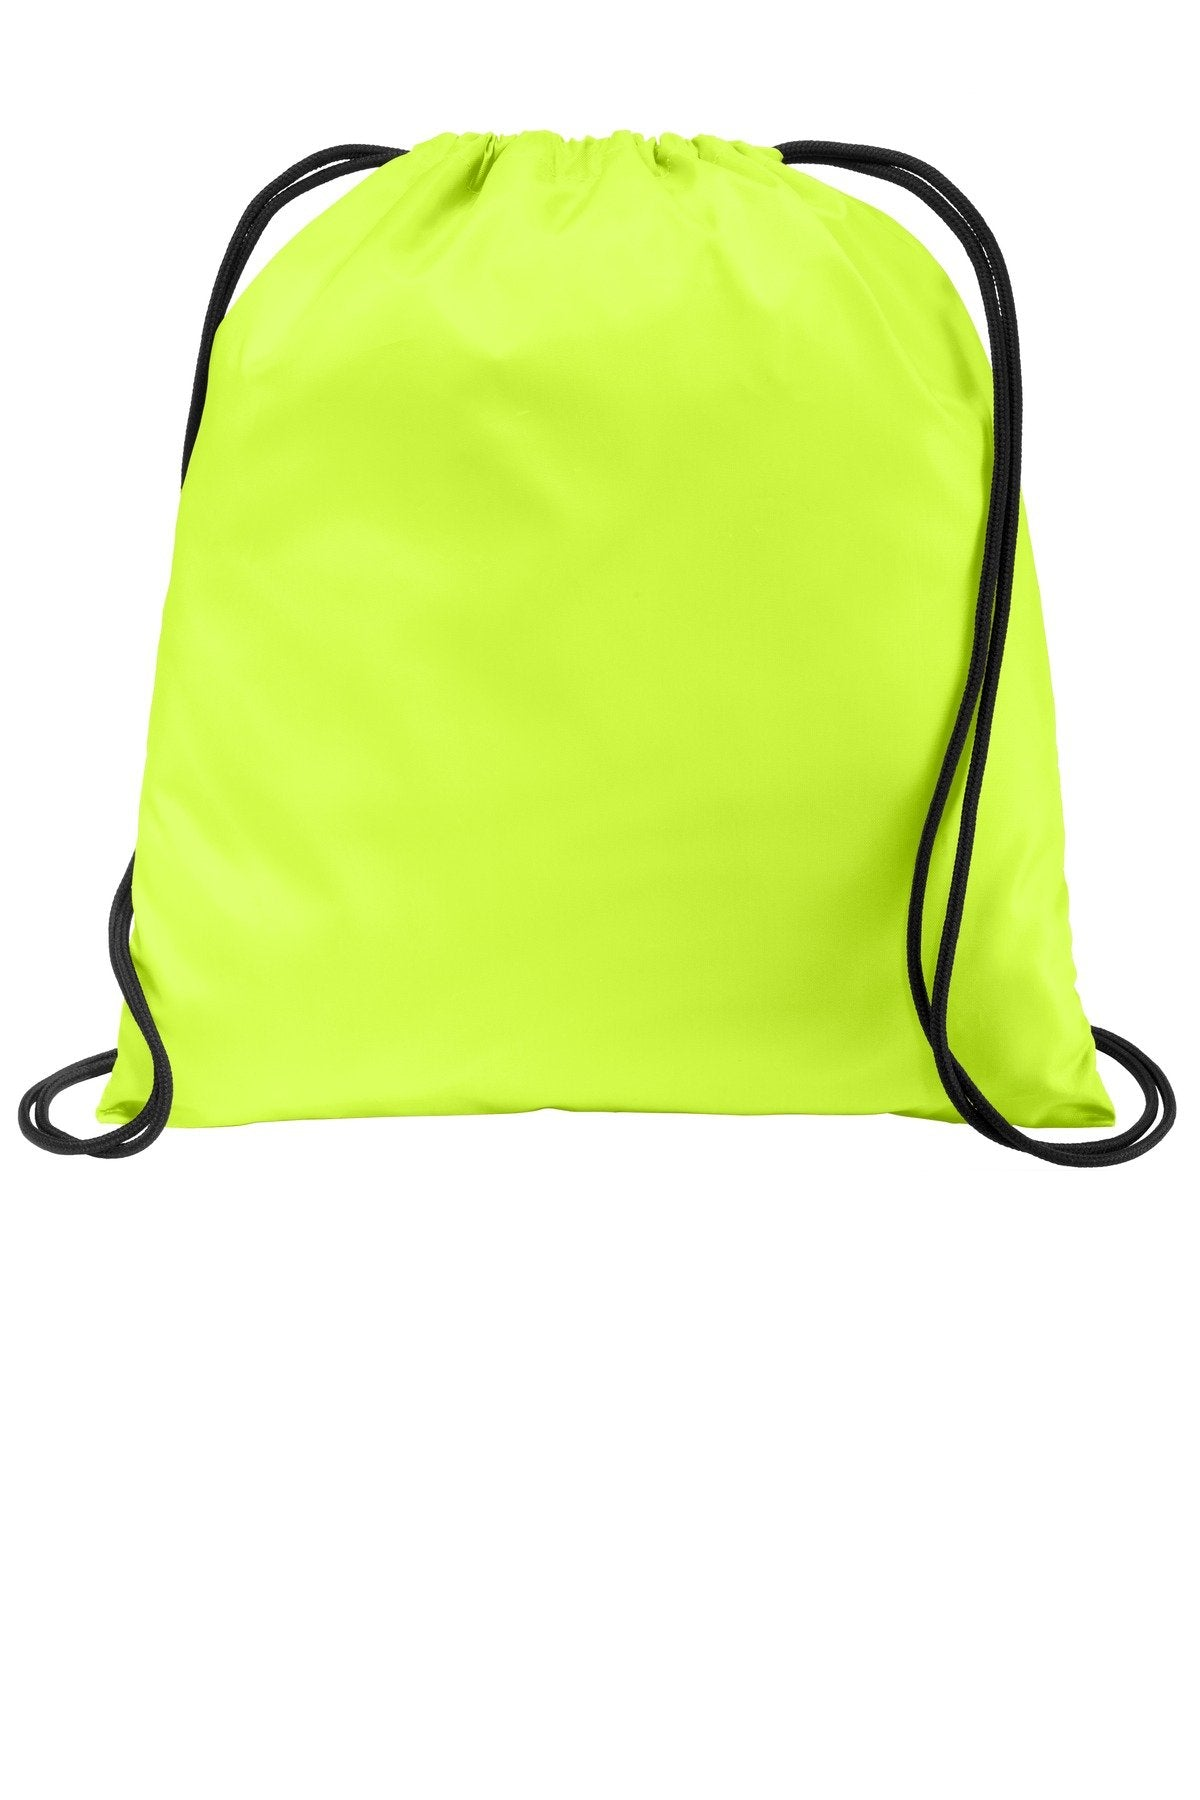 Neon Yellow - Port Authority BG615